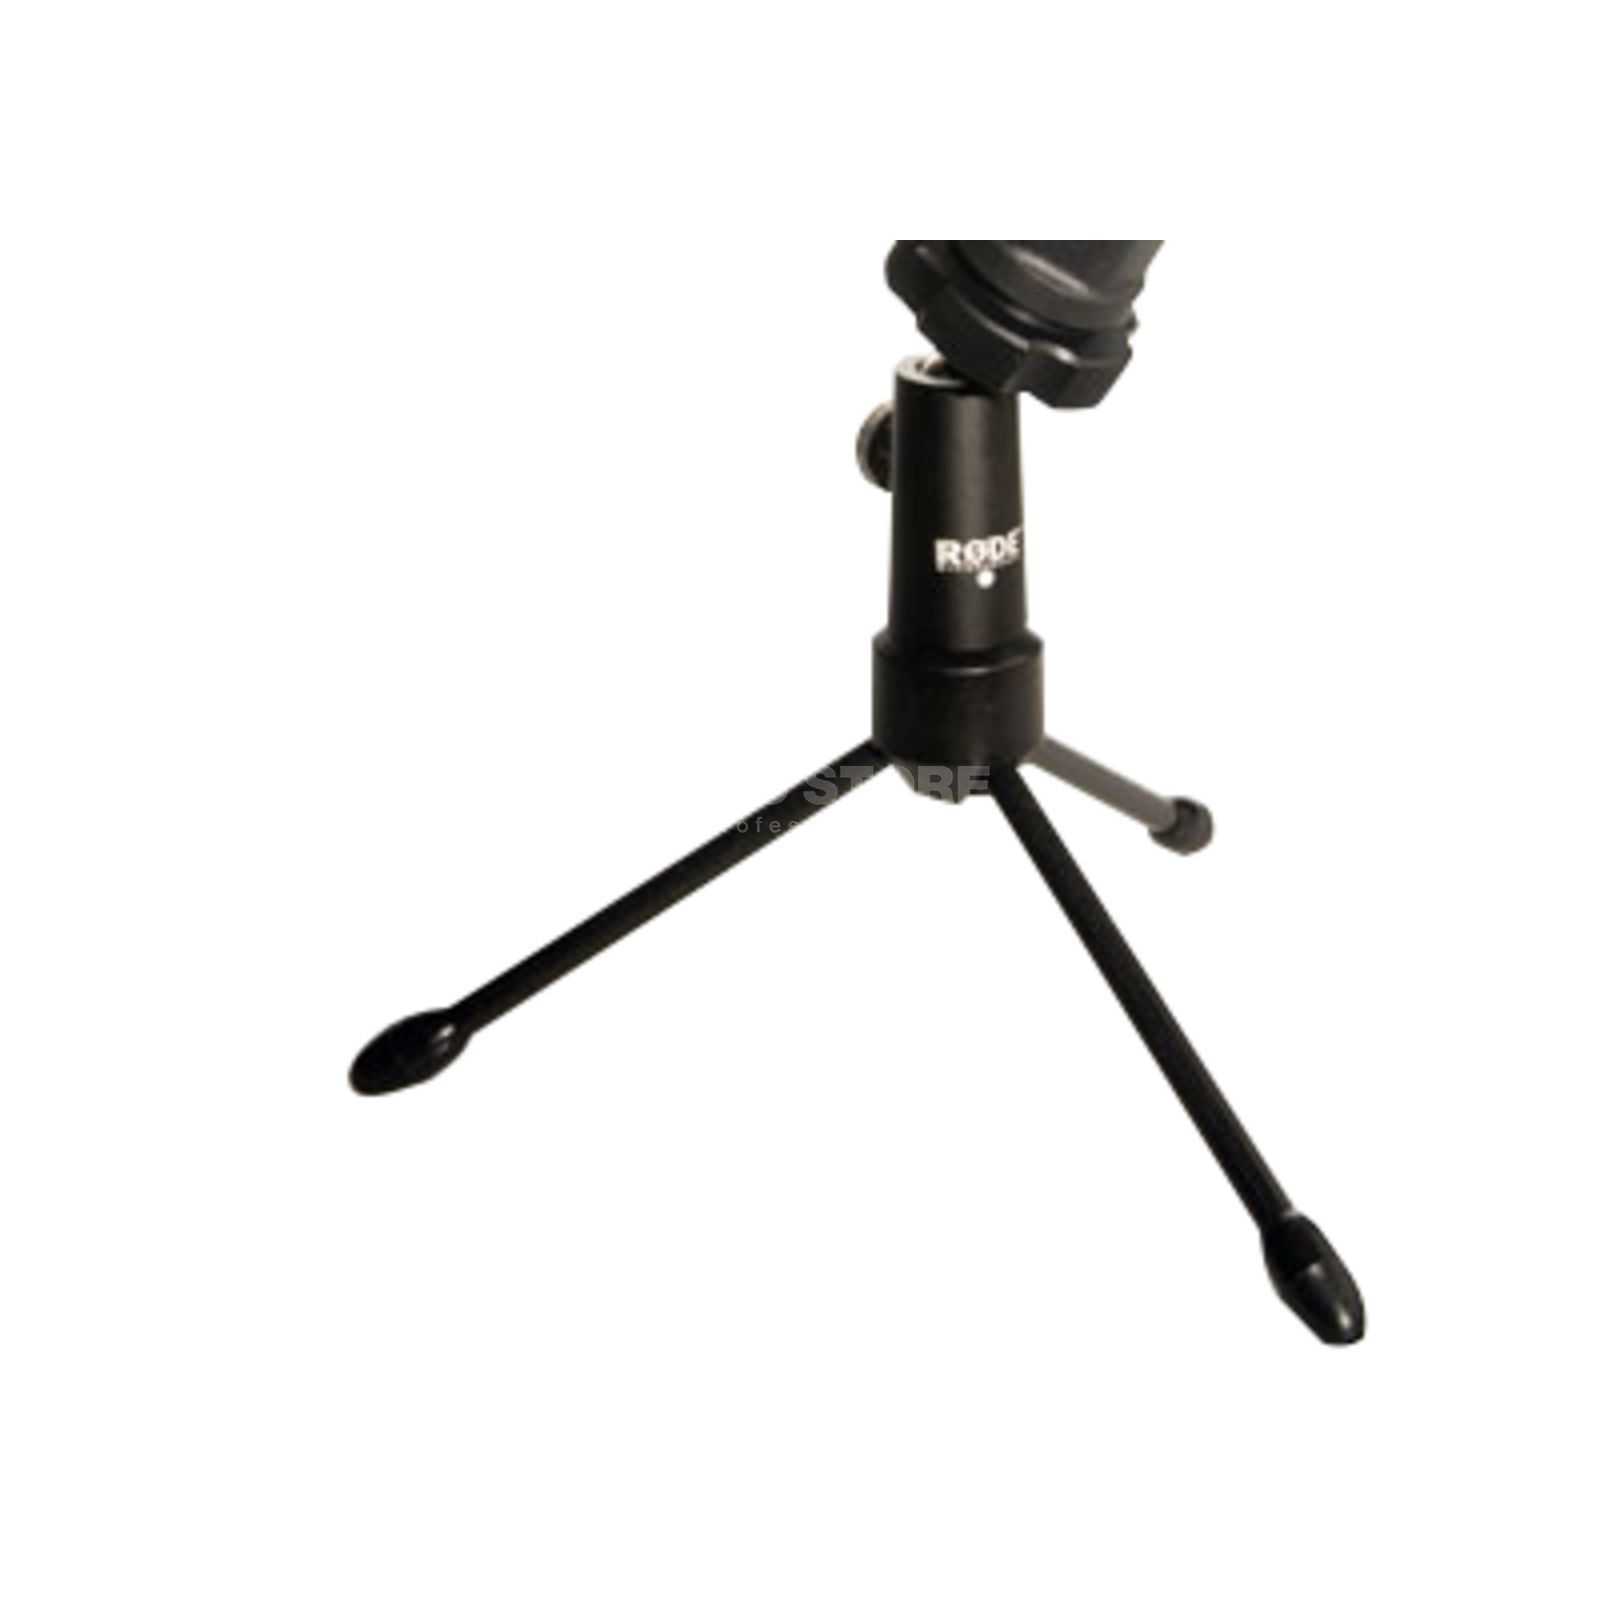 Rode Tripod Mini Collapsable Tabletop Microphone Stand Produktbillede